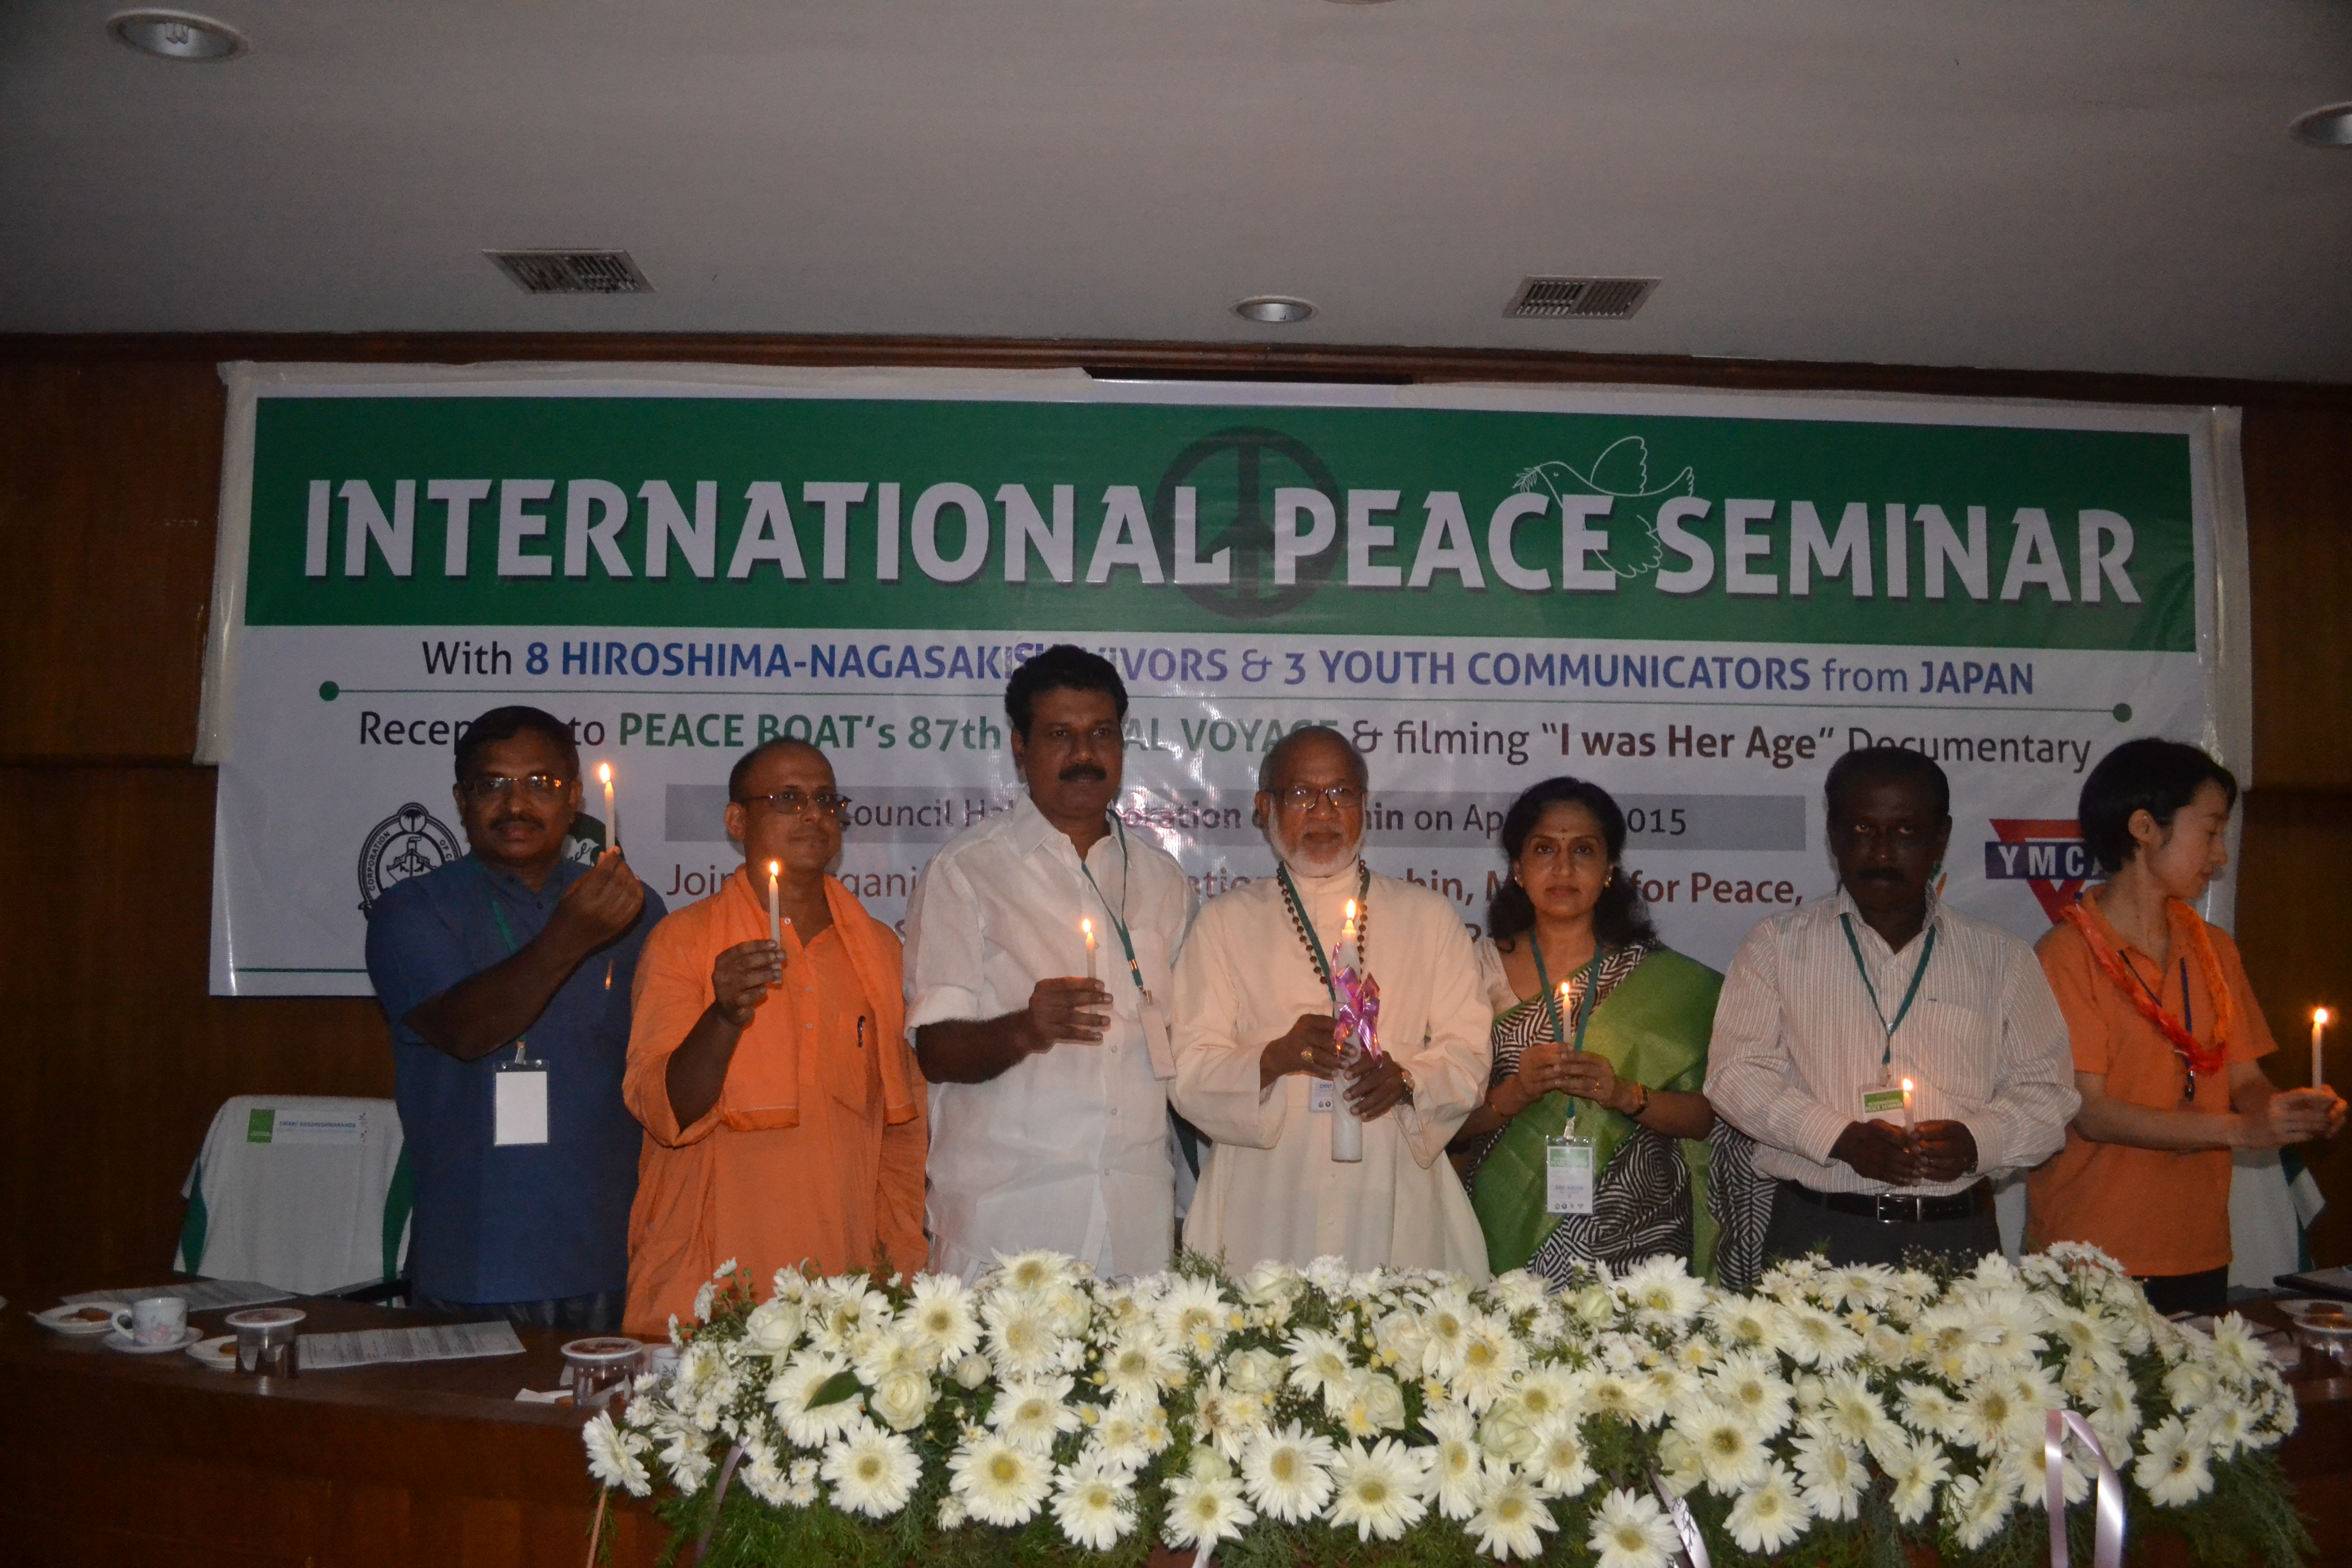 Peace Boat spreads message of nuclear-free world